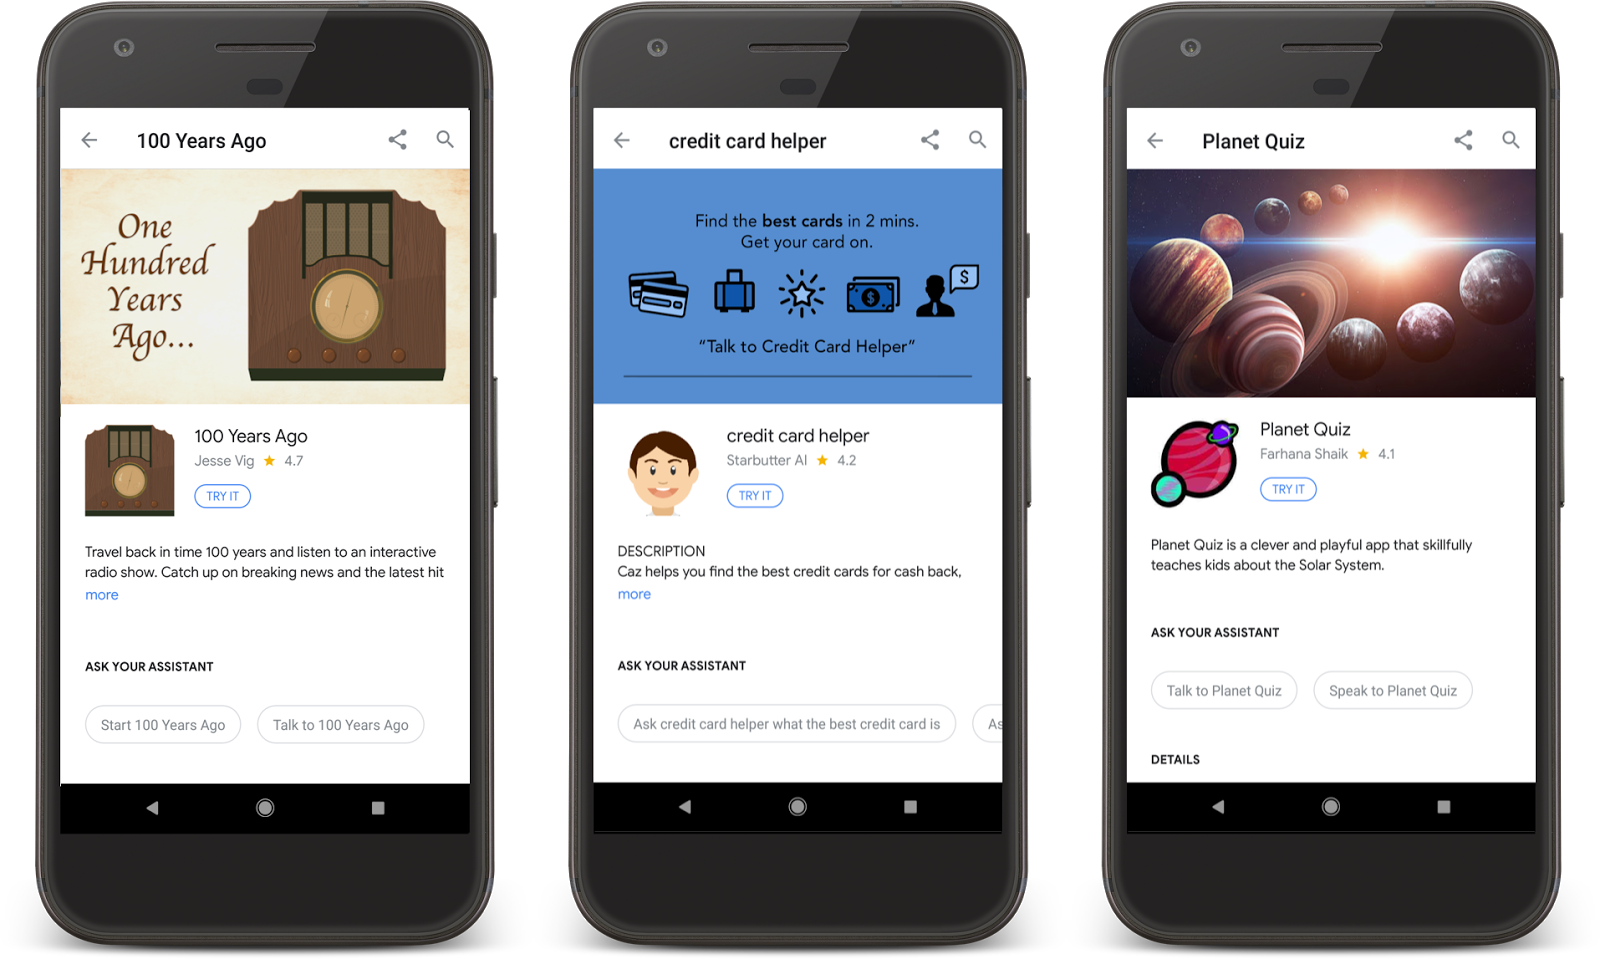 introducing the winners of the actions on google developer challenge - image1 - Introducing the winners of the Actions on Google Developer Challenge